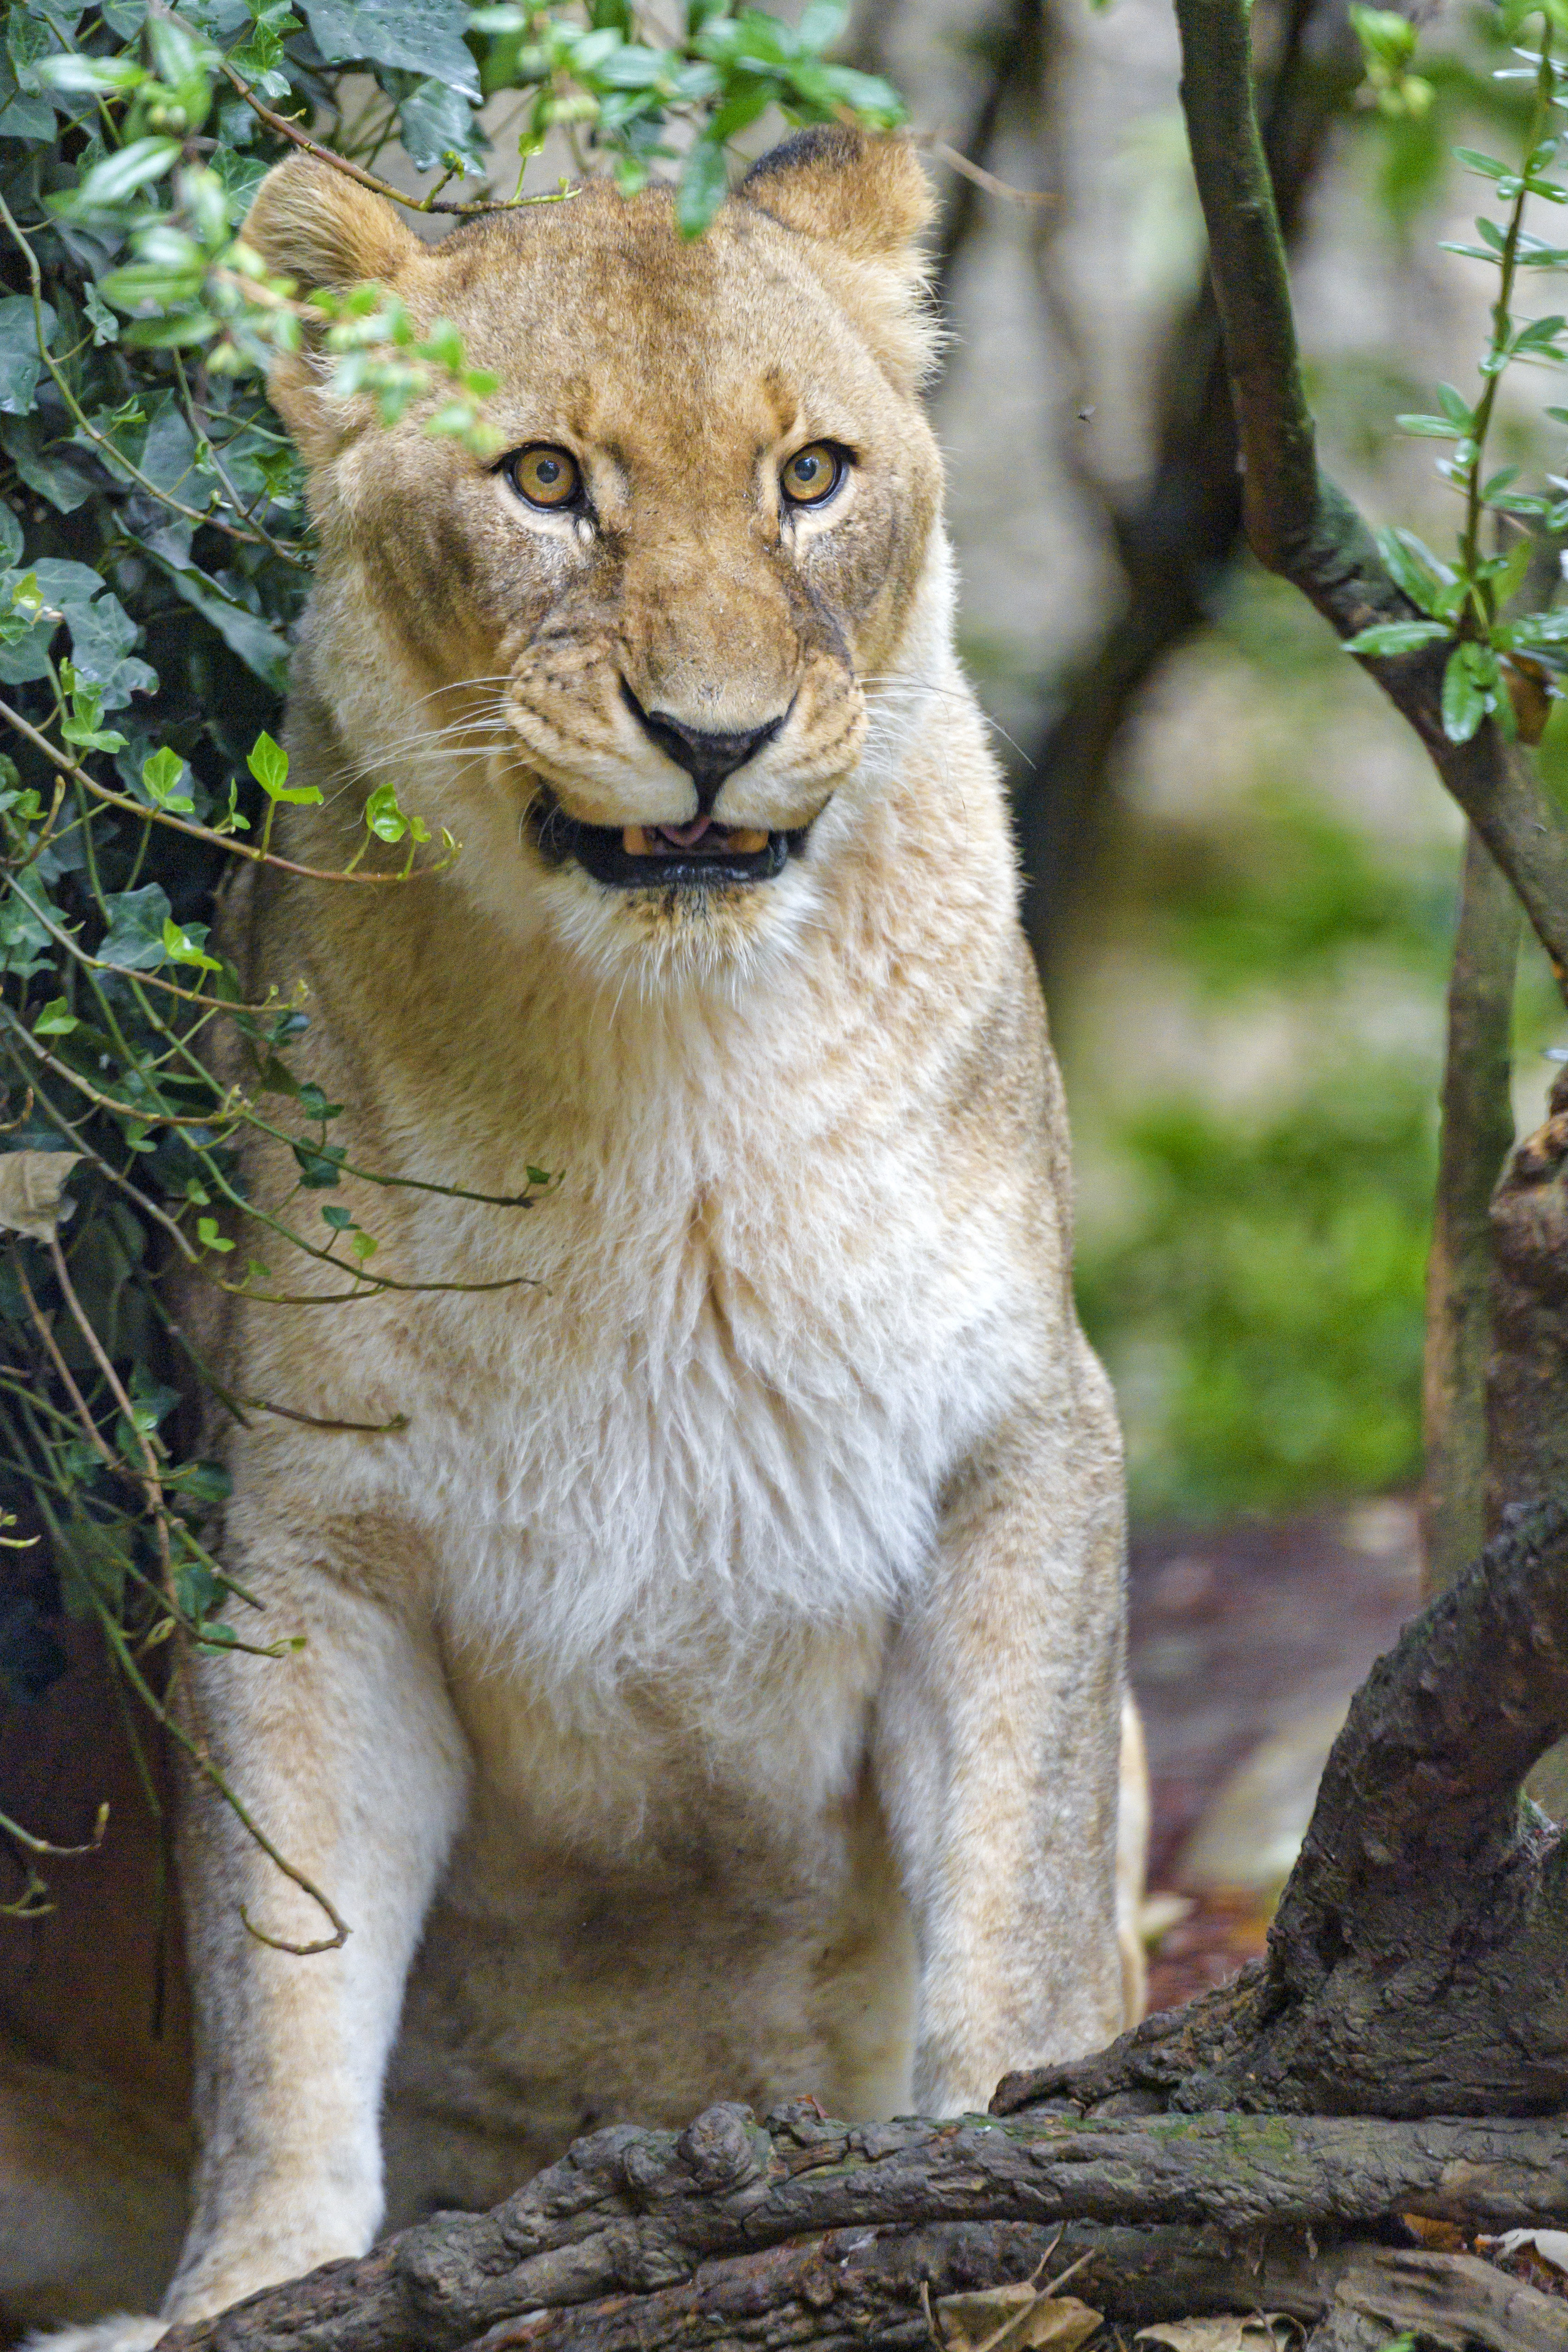 77731 download wallpaper Animals, Lioness, Big Cat, Predator, Sight, Opinion, Branches screensavers and pictures for free